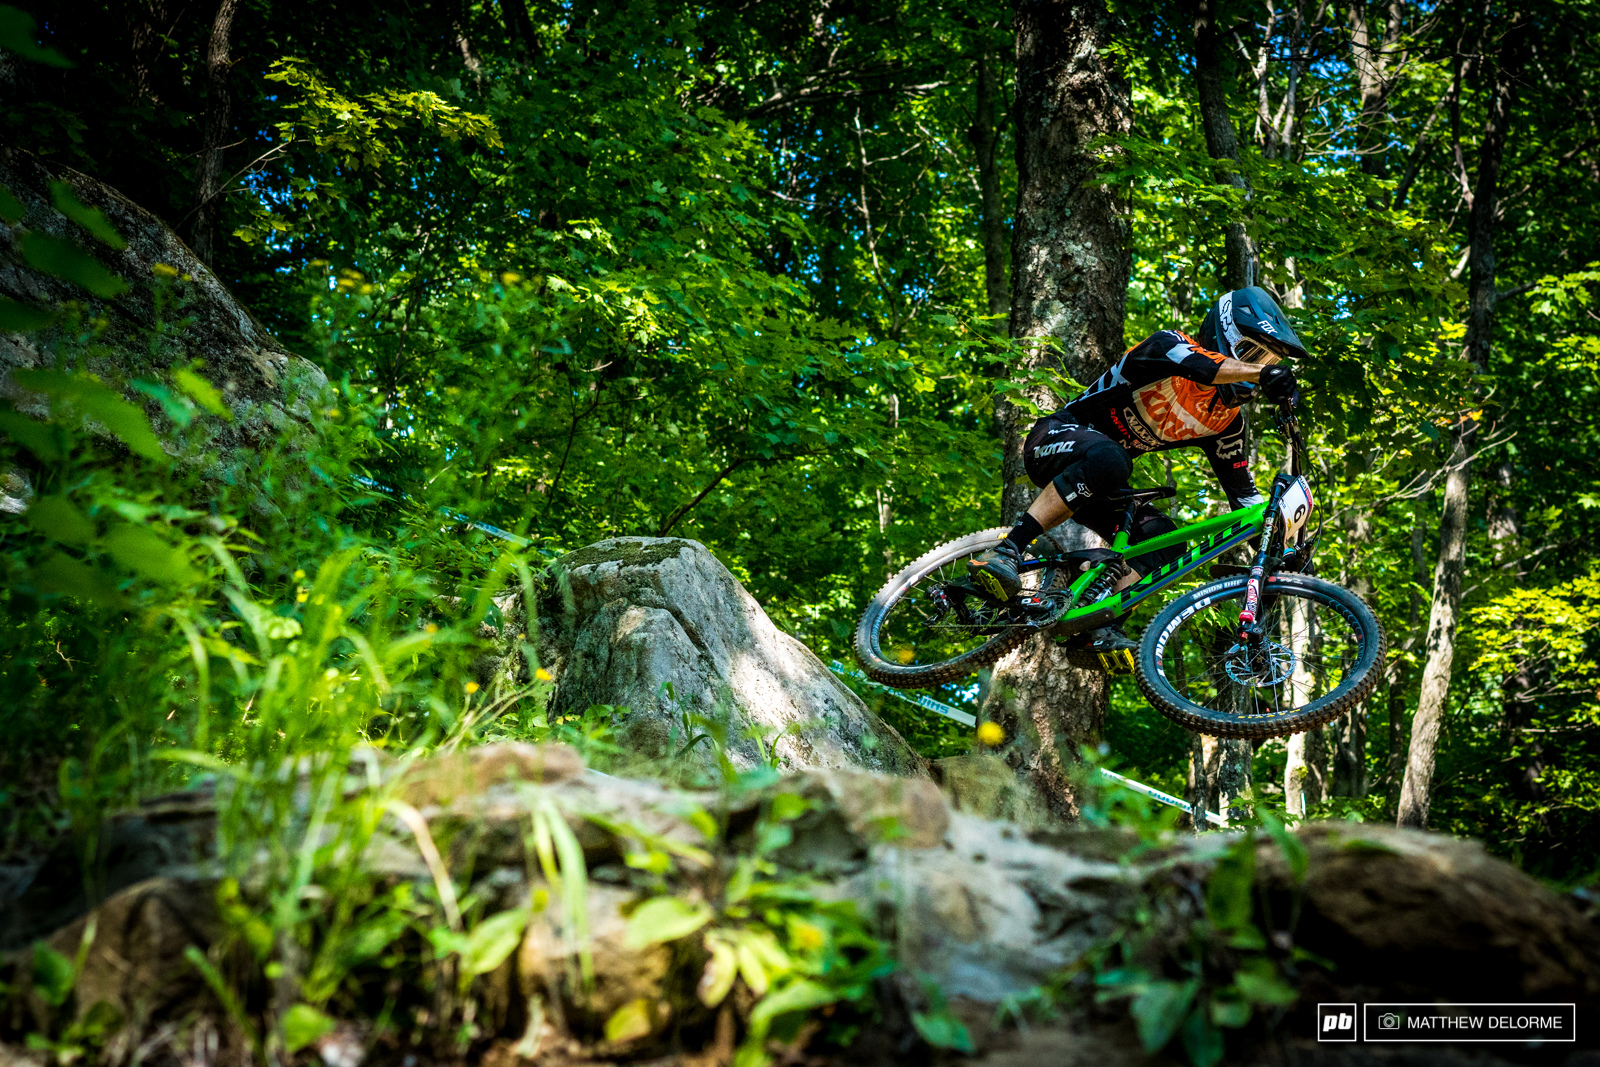 Connor Fearon throws it into the lower half of the big midway woods section.